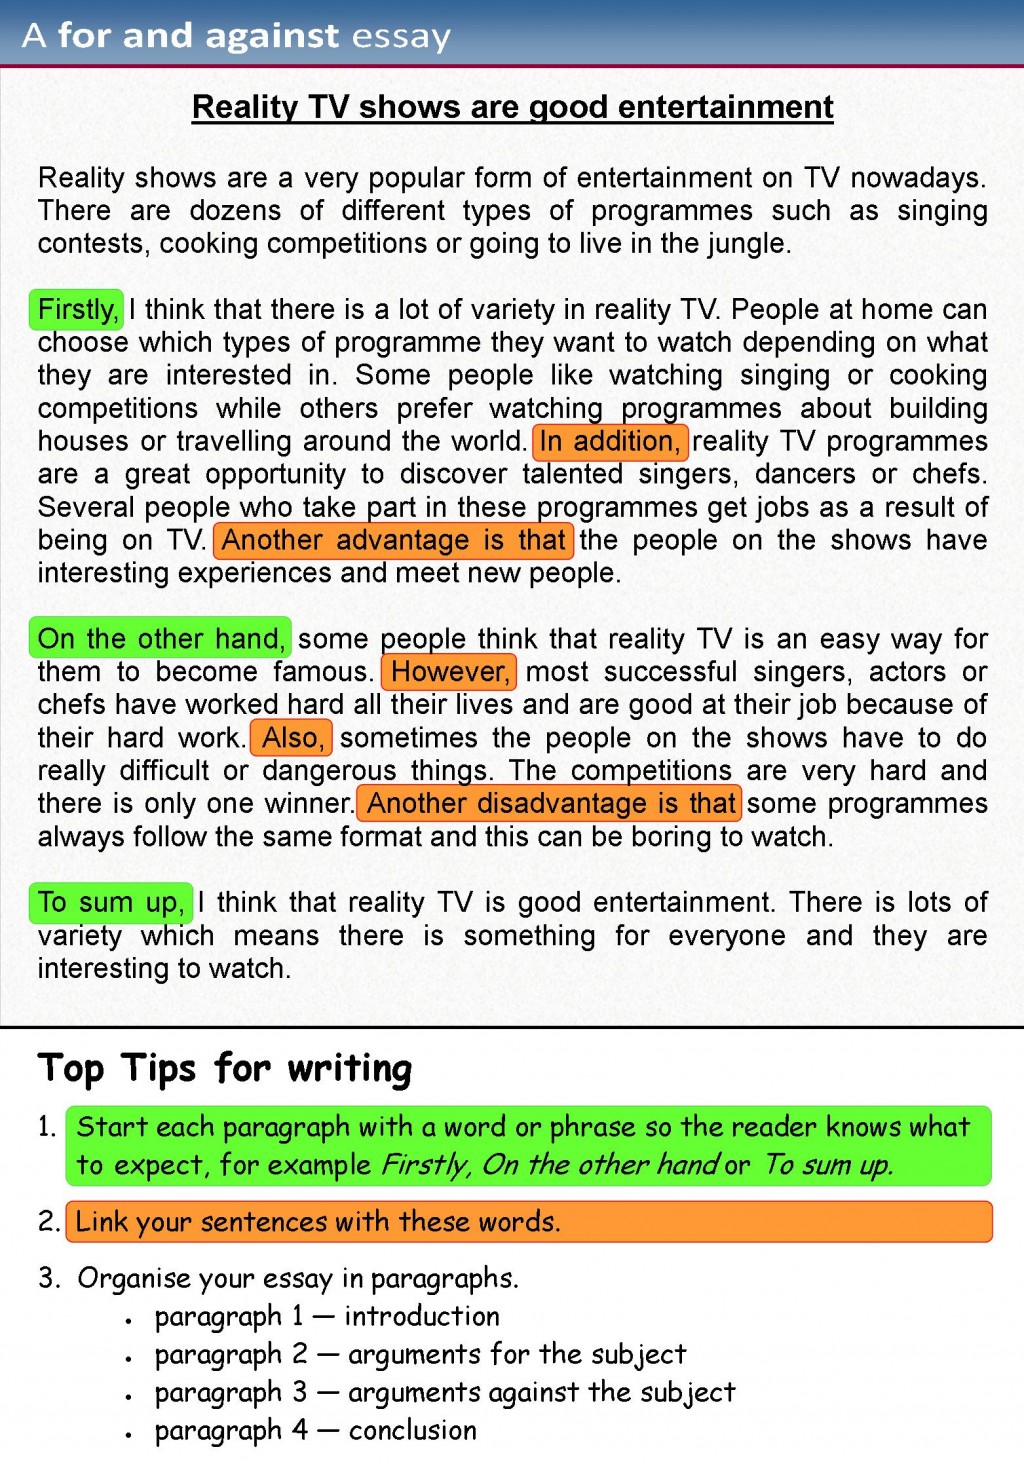 011 For Against Essay 1 Example Paragraph Sensational 3 Kids Large